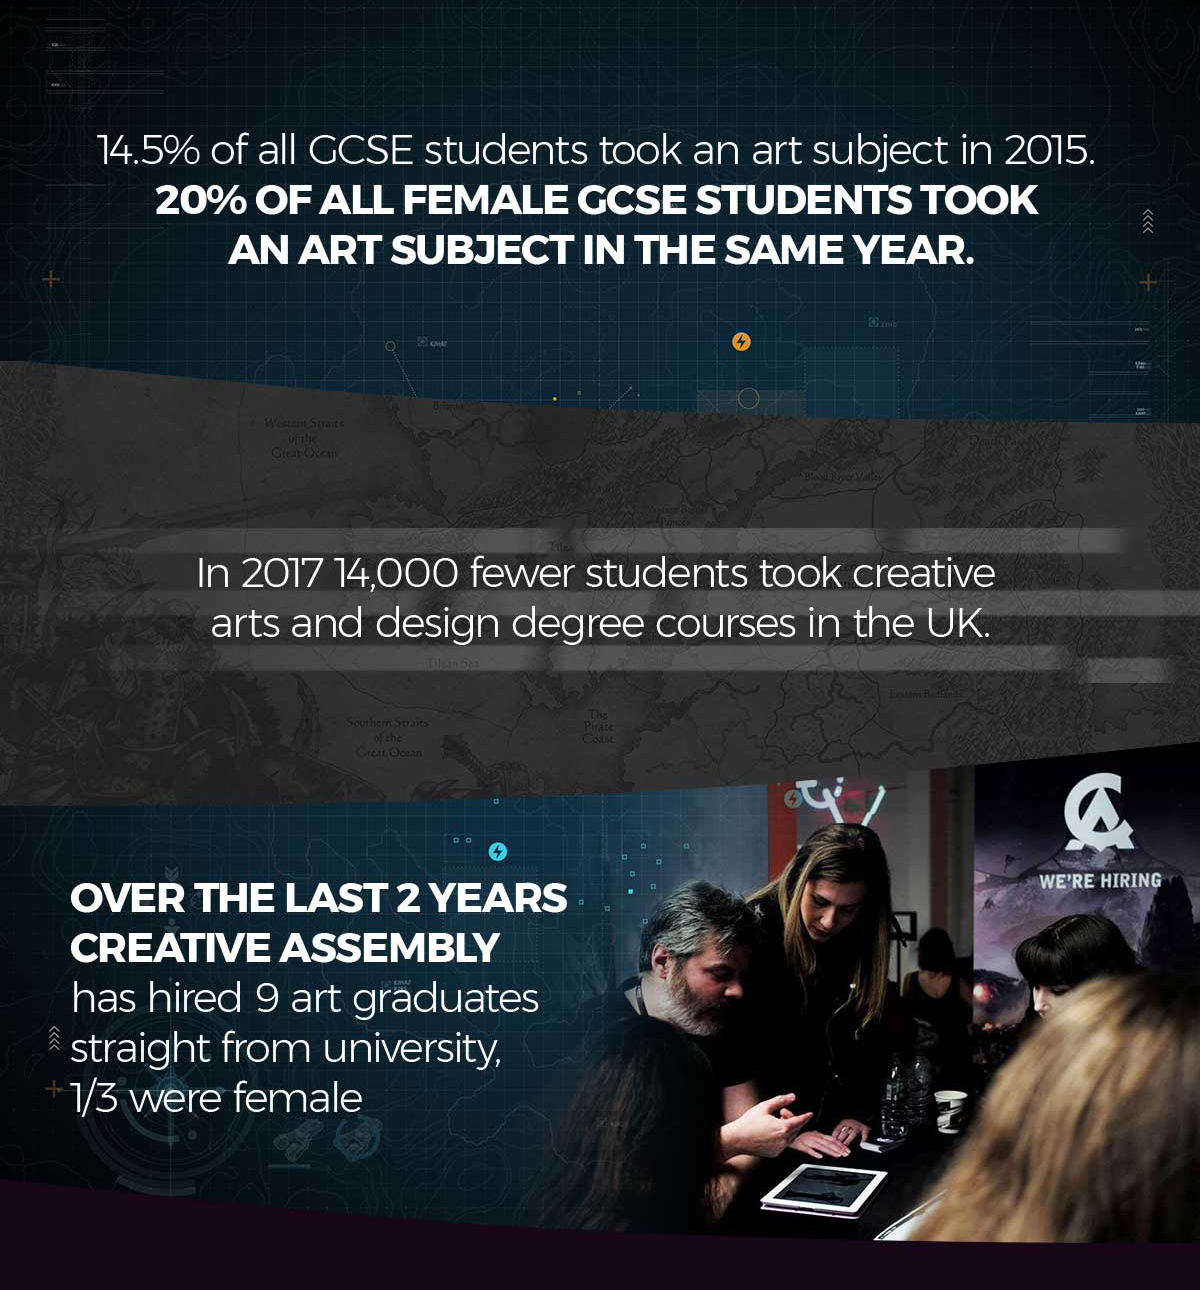 Art education in the UK